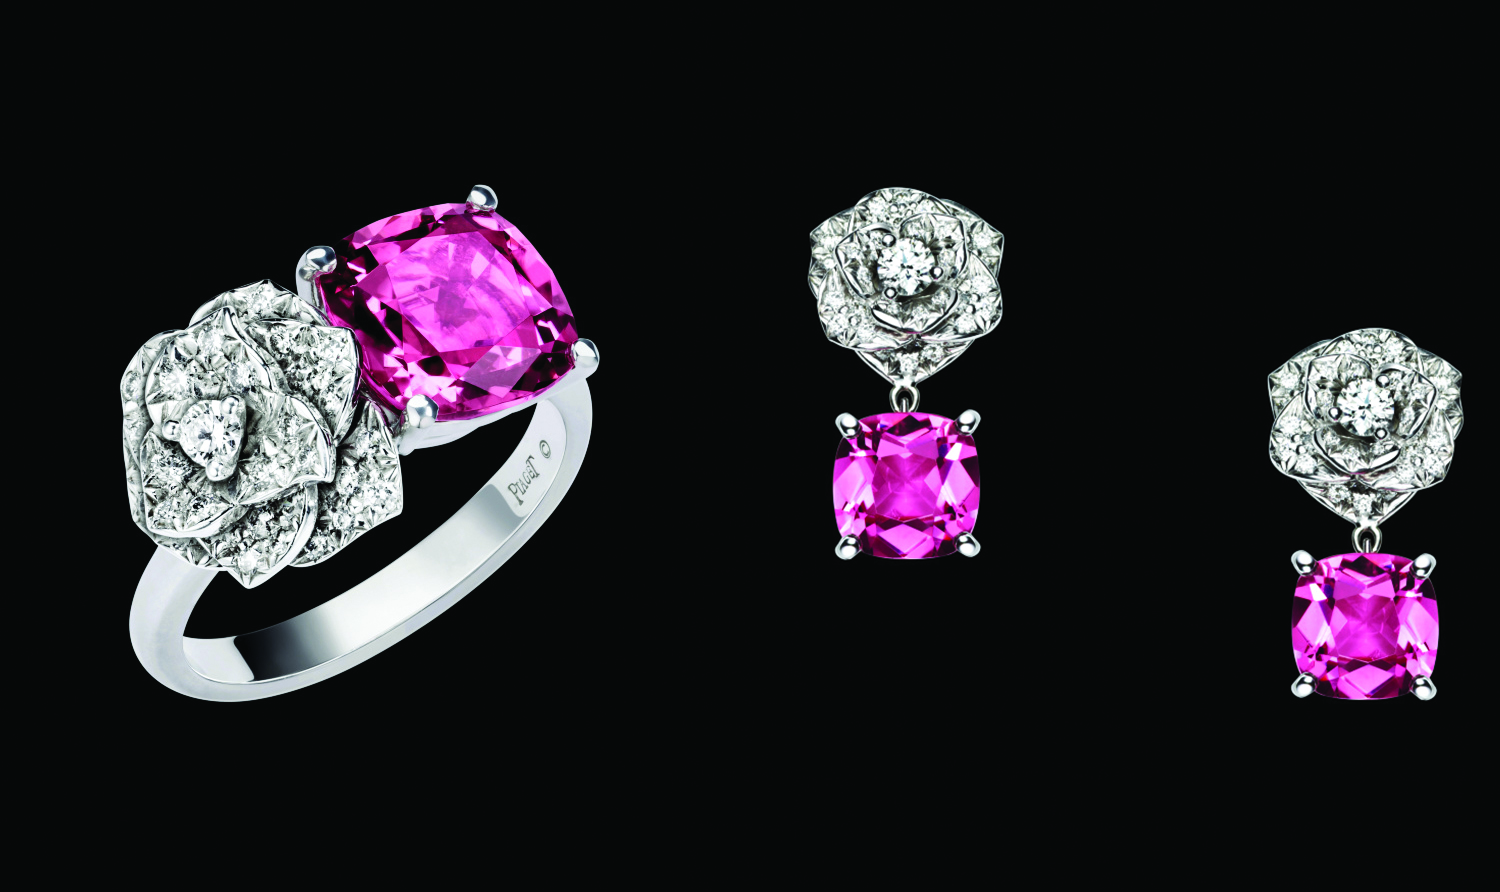 Some of the Piaget rose collection. Image courtesy of Piaget.com